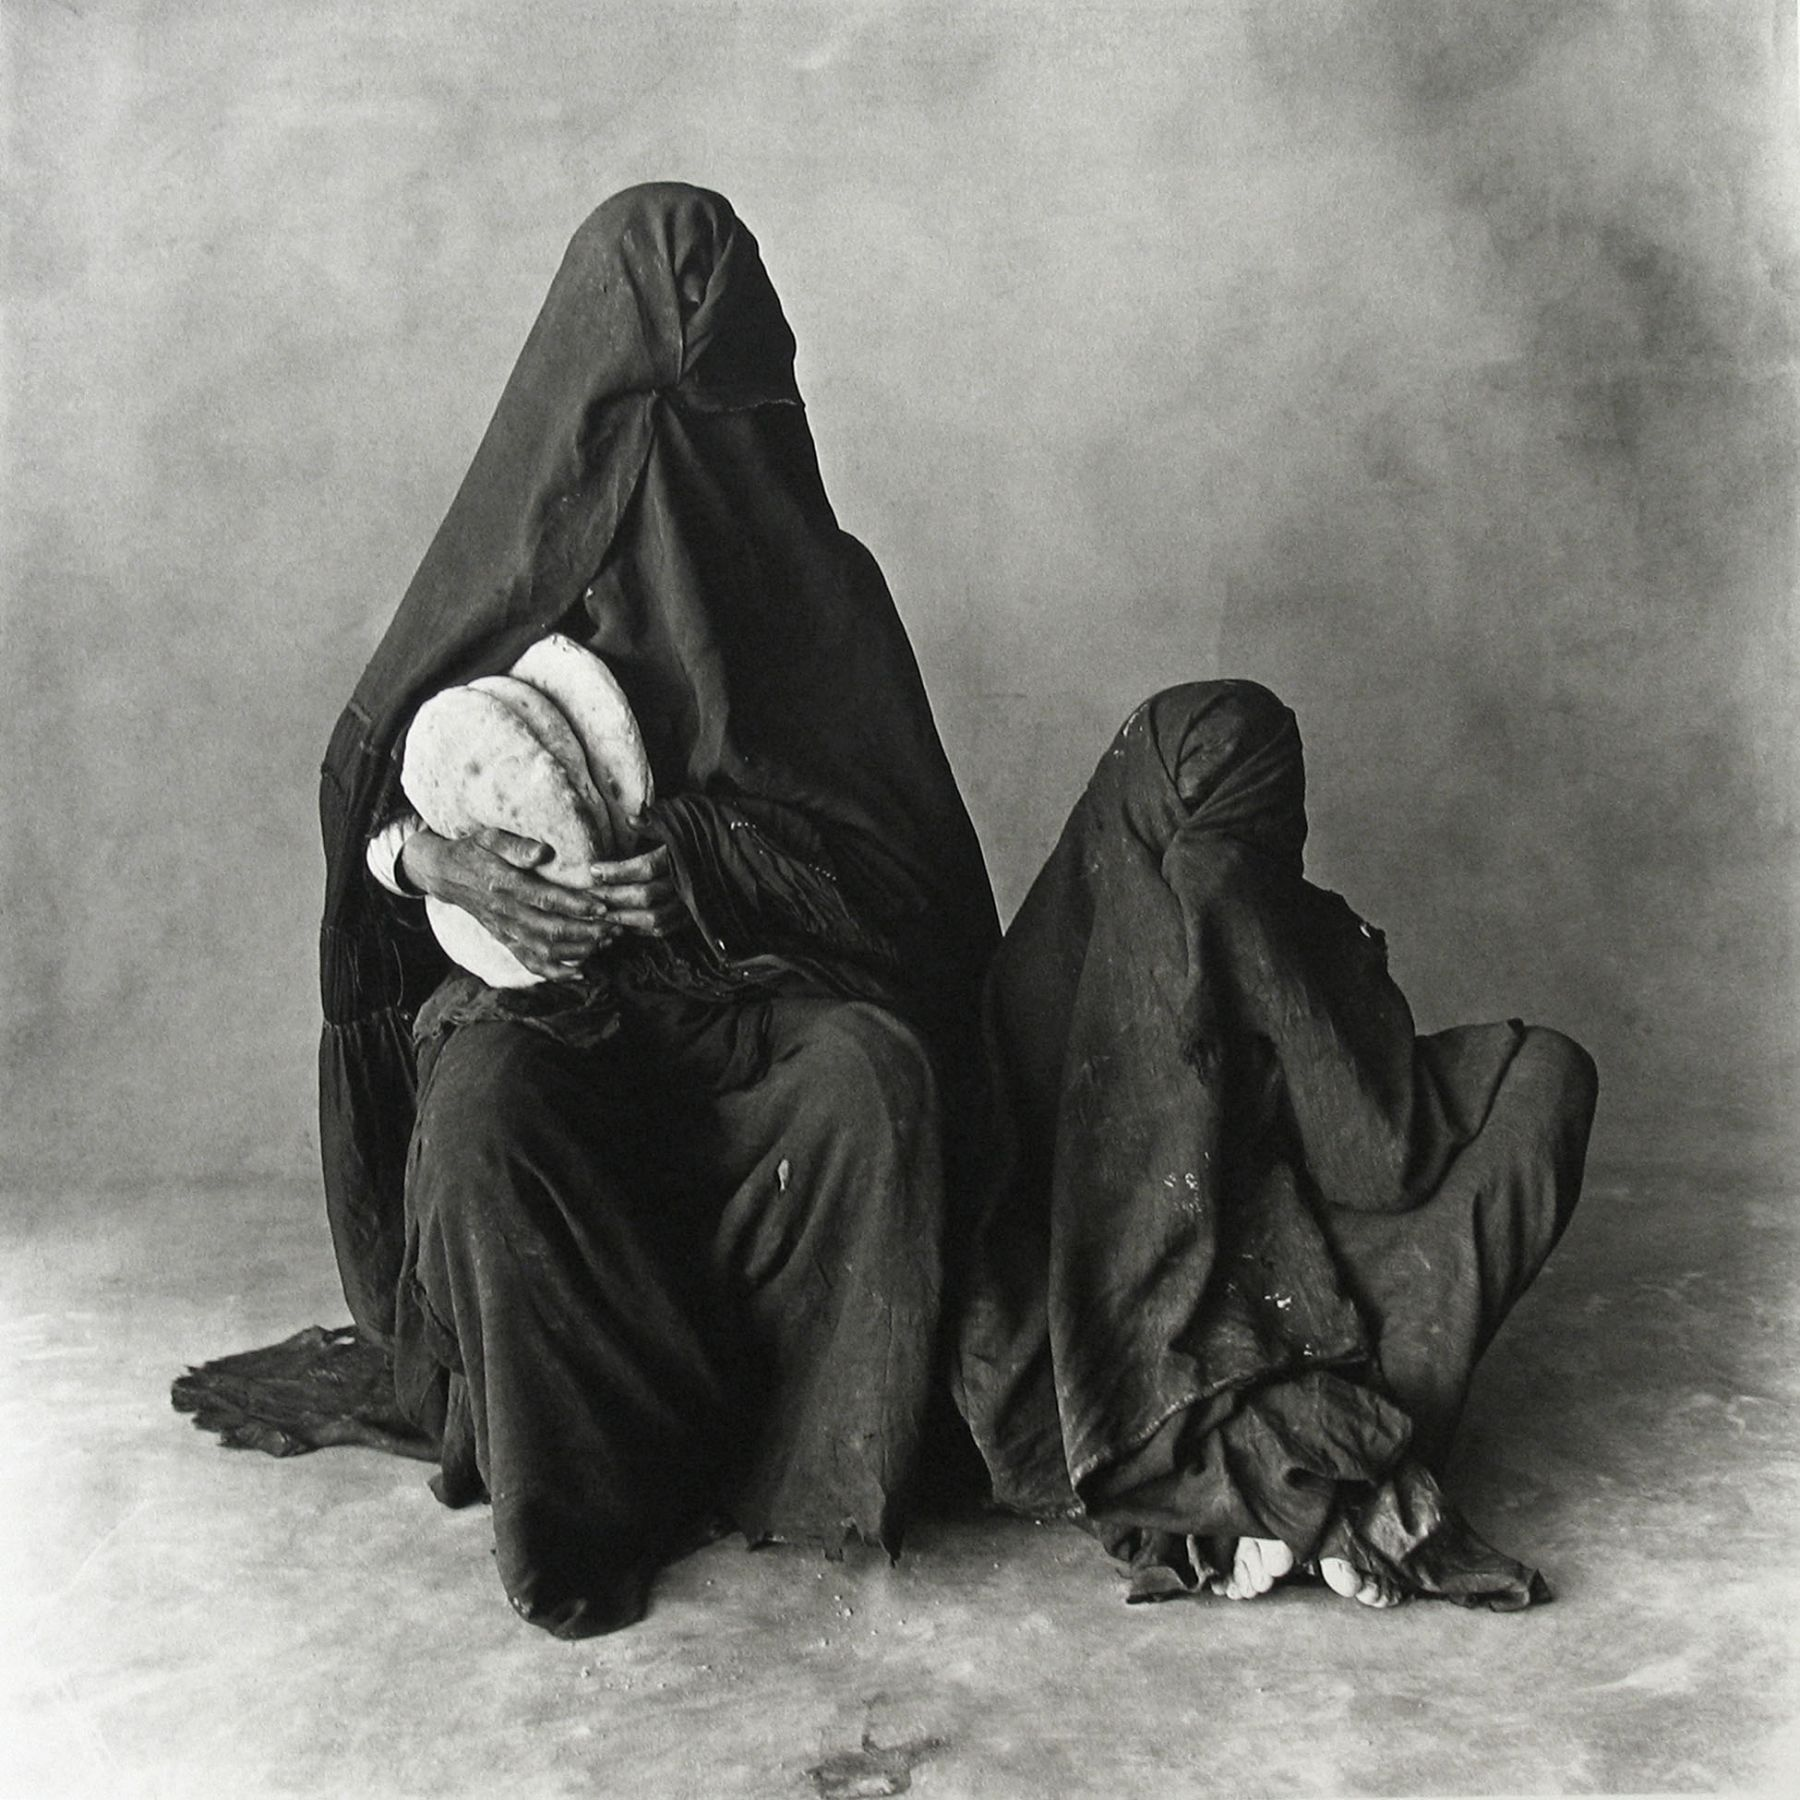 Two Women in Black with Bread, Morocco, 1971, Platinum Palladium Photograph, Ed. of 21